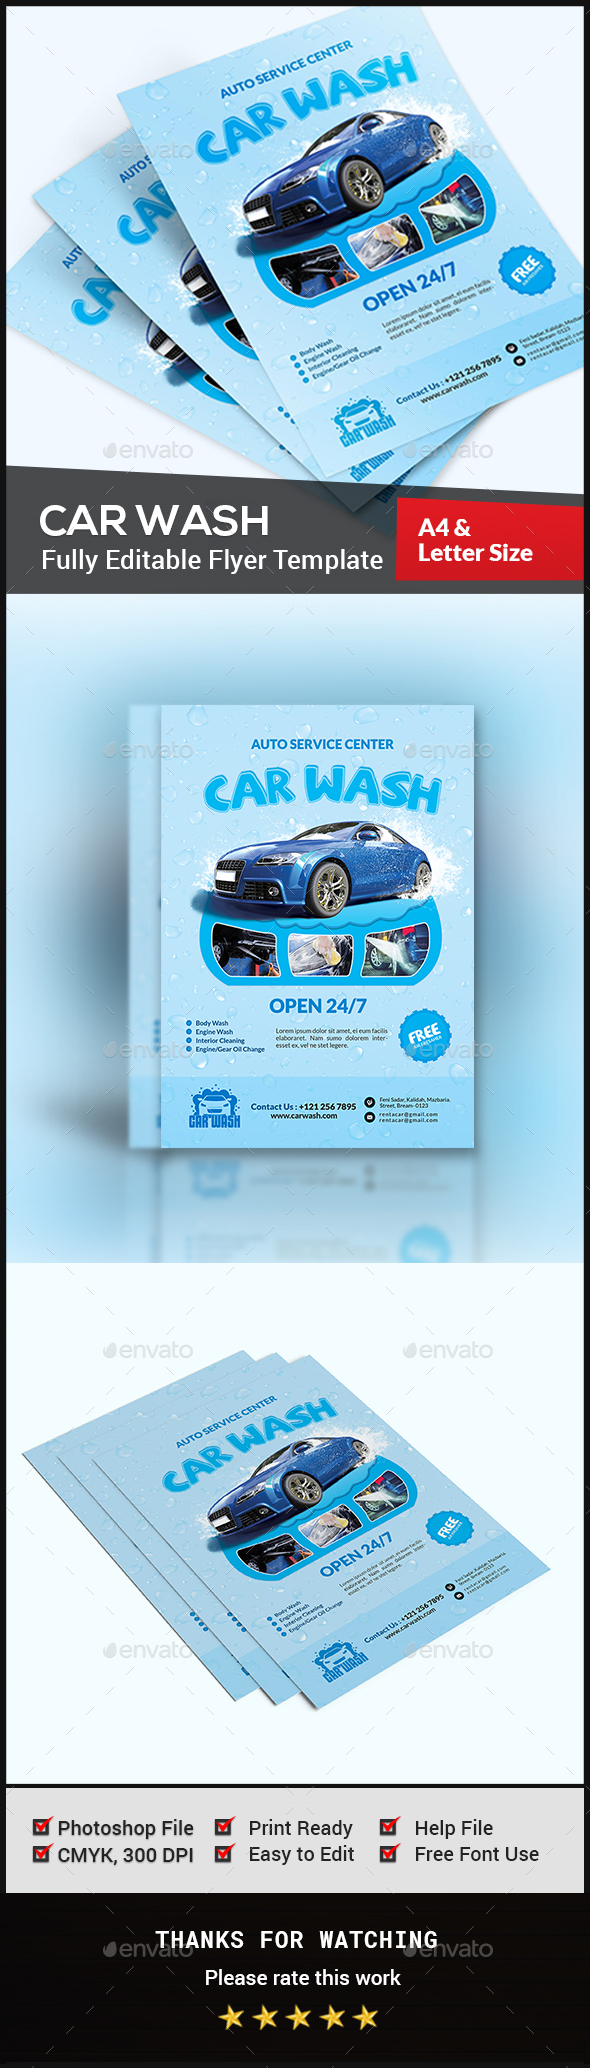 car wash flyer template by creative touch graphicriver. Black Bedroom Furniture Sets. Home Design Ideas